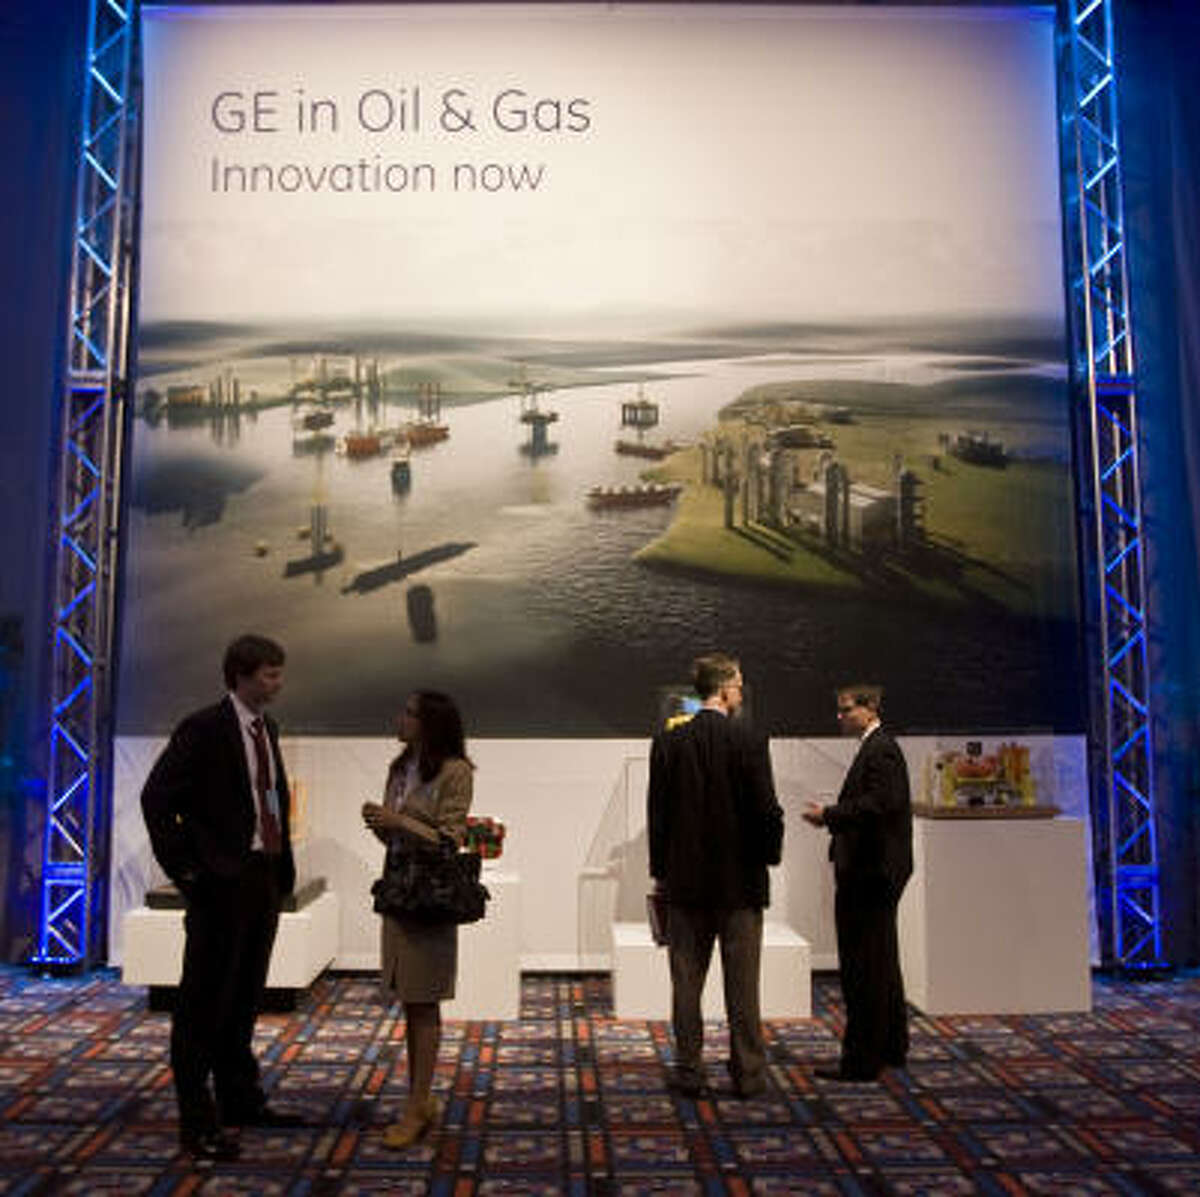 With a GE display as the backdrop, several people attending the company's meeting talk things over Wednesday at the George R. Brown Convention Center.